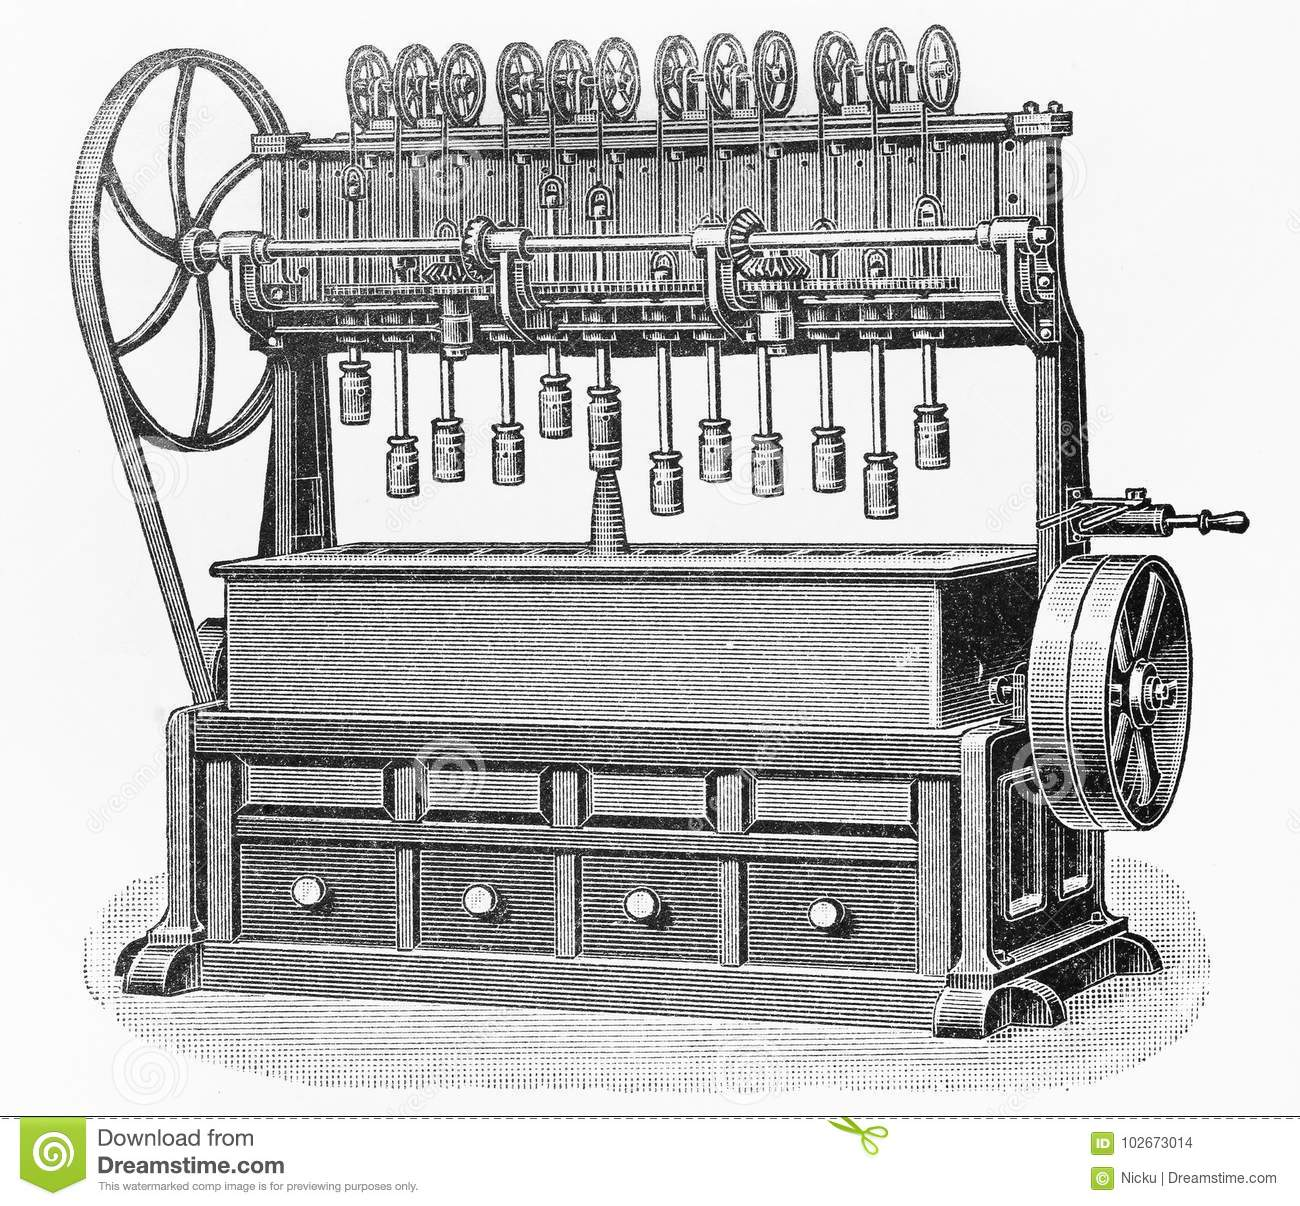 Vintage Carrots processing machine drawing